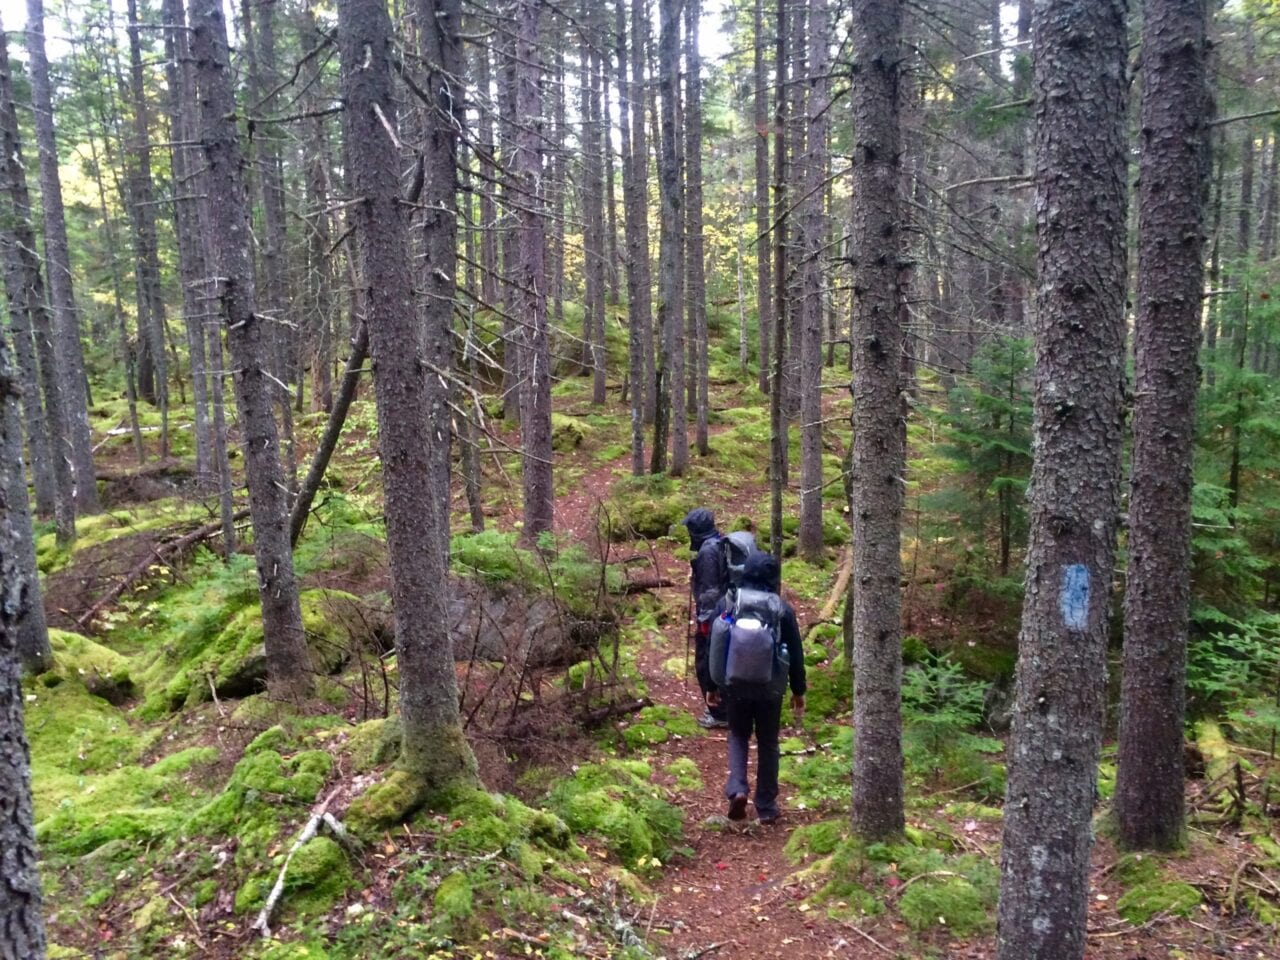 Hikers move down a trail through a mossy forest.